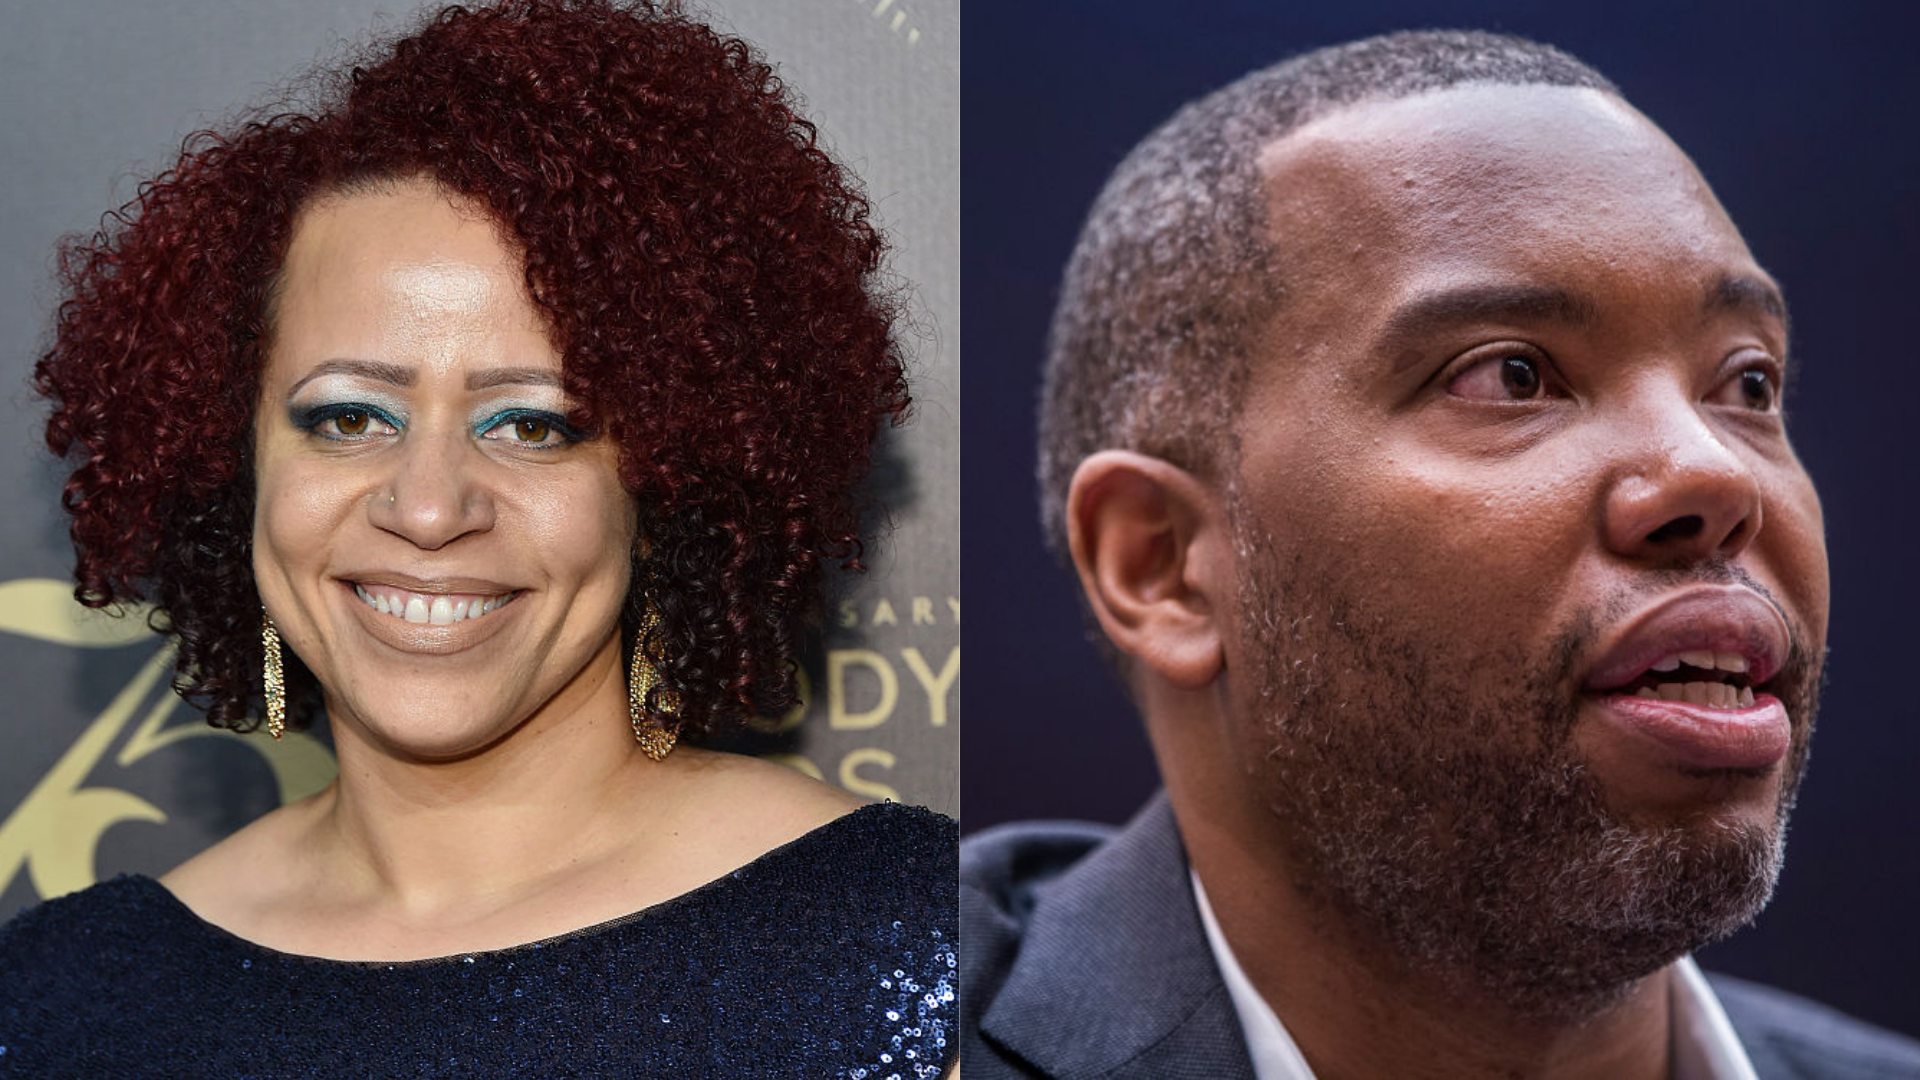 I'm Happy That Nikole Hannah-Jones and Ta-Nehisi Coates Are Going to Howard. Now, Howard Folks Get to Be More Insufferable. Yay